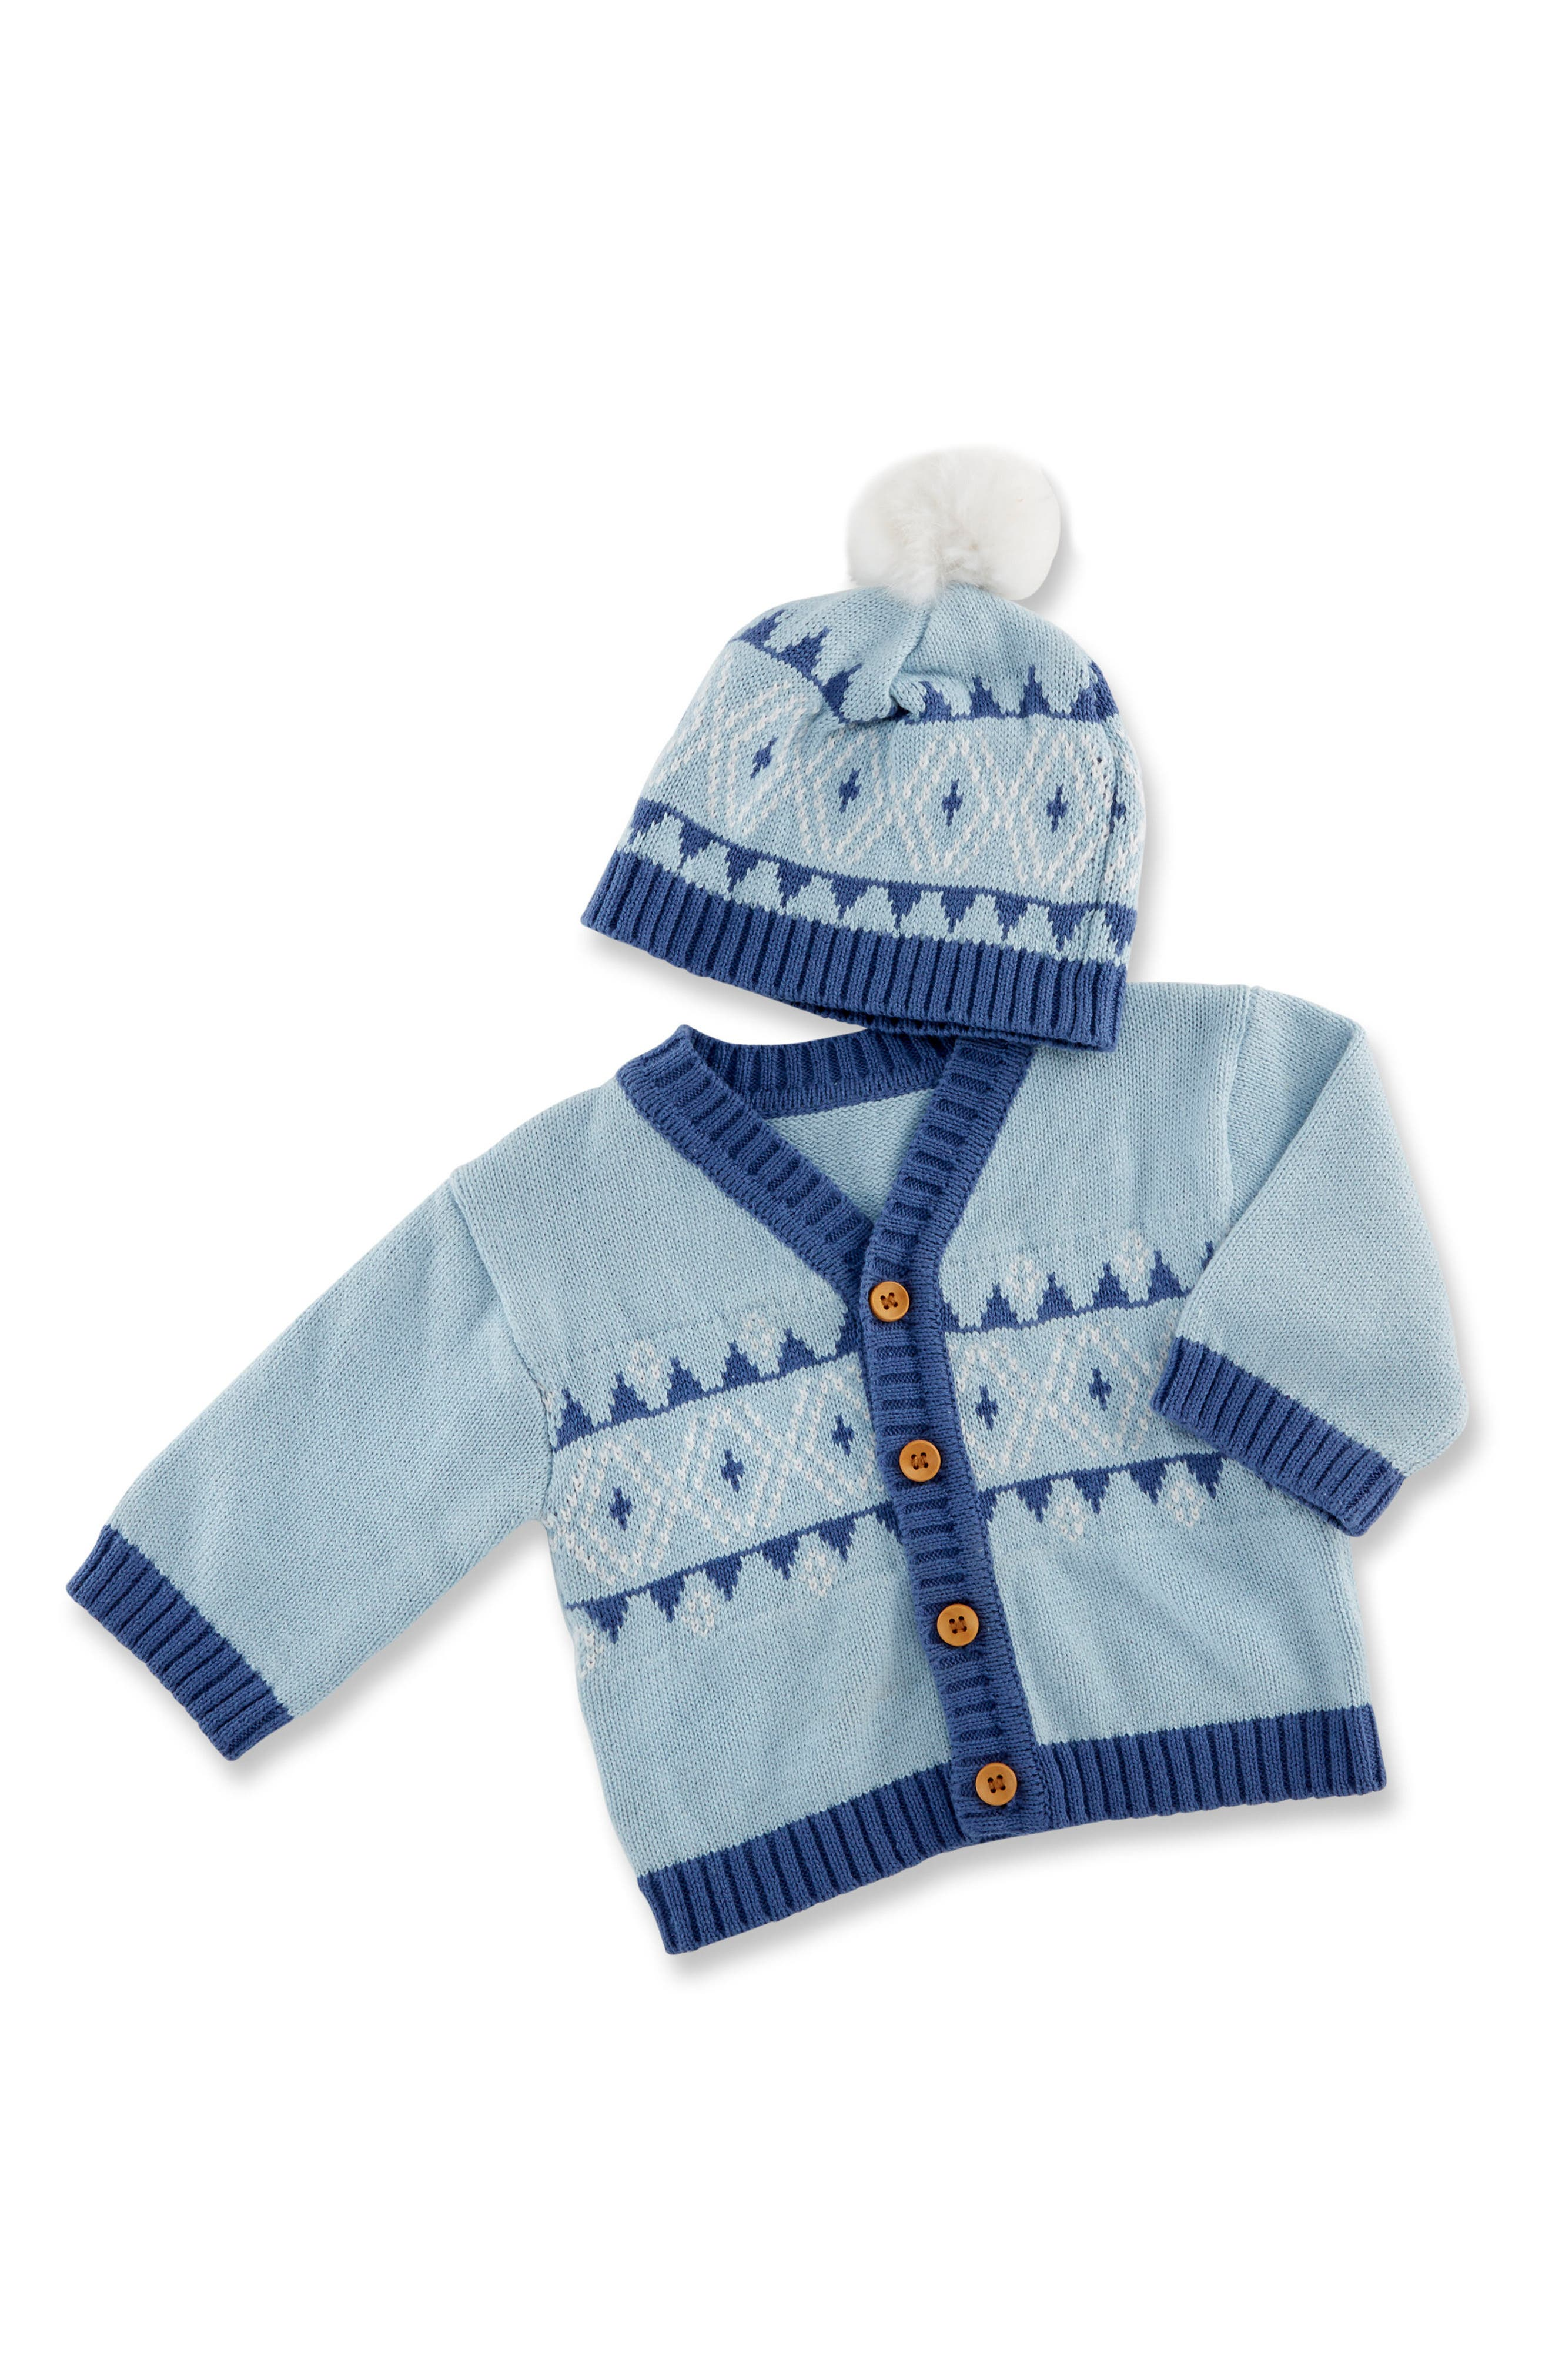 Alternate Image 1 Selected - Baby Aspen Fairy Tale Forest Cardigan & Hat Set (Baby Boys)